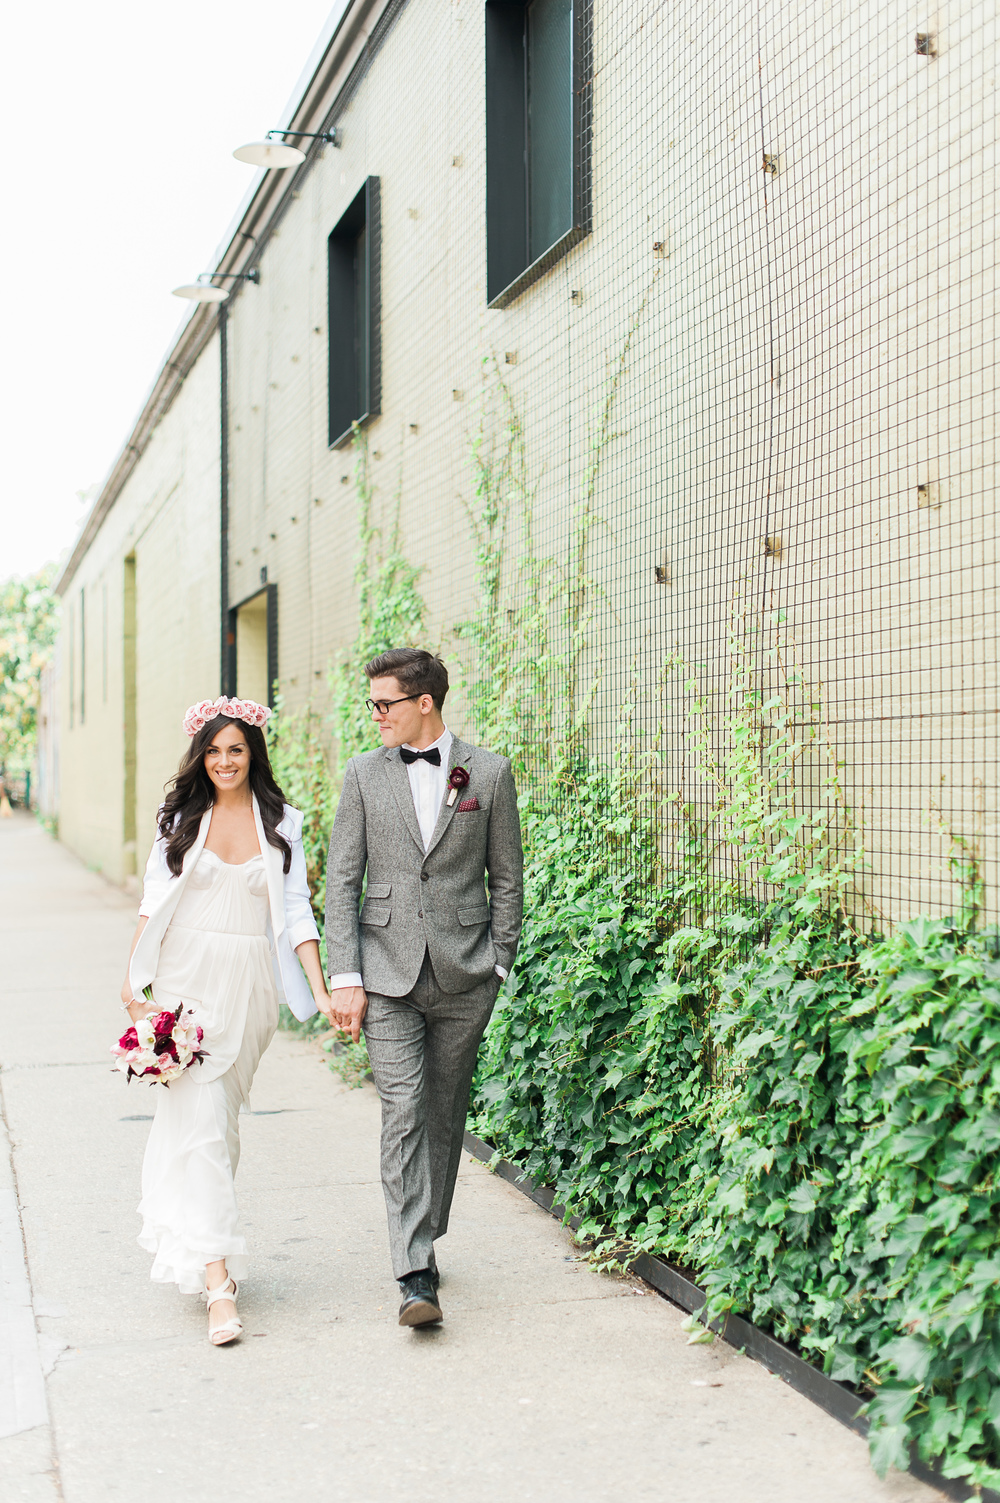 the_green_building_wedding_brklyn view photography_hanaluluco_11.jpg